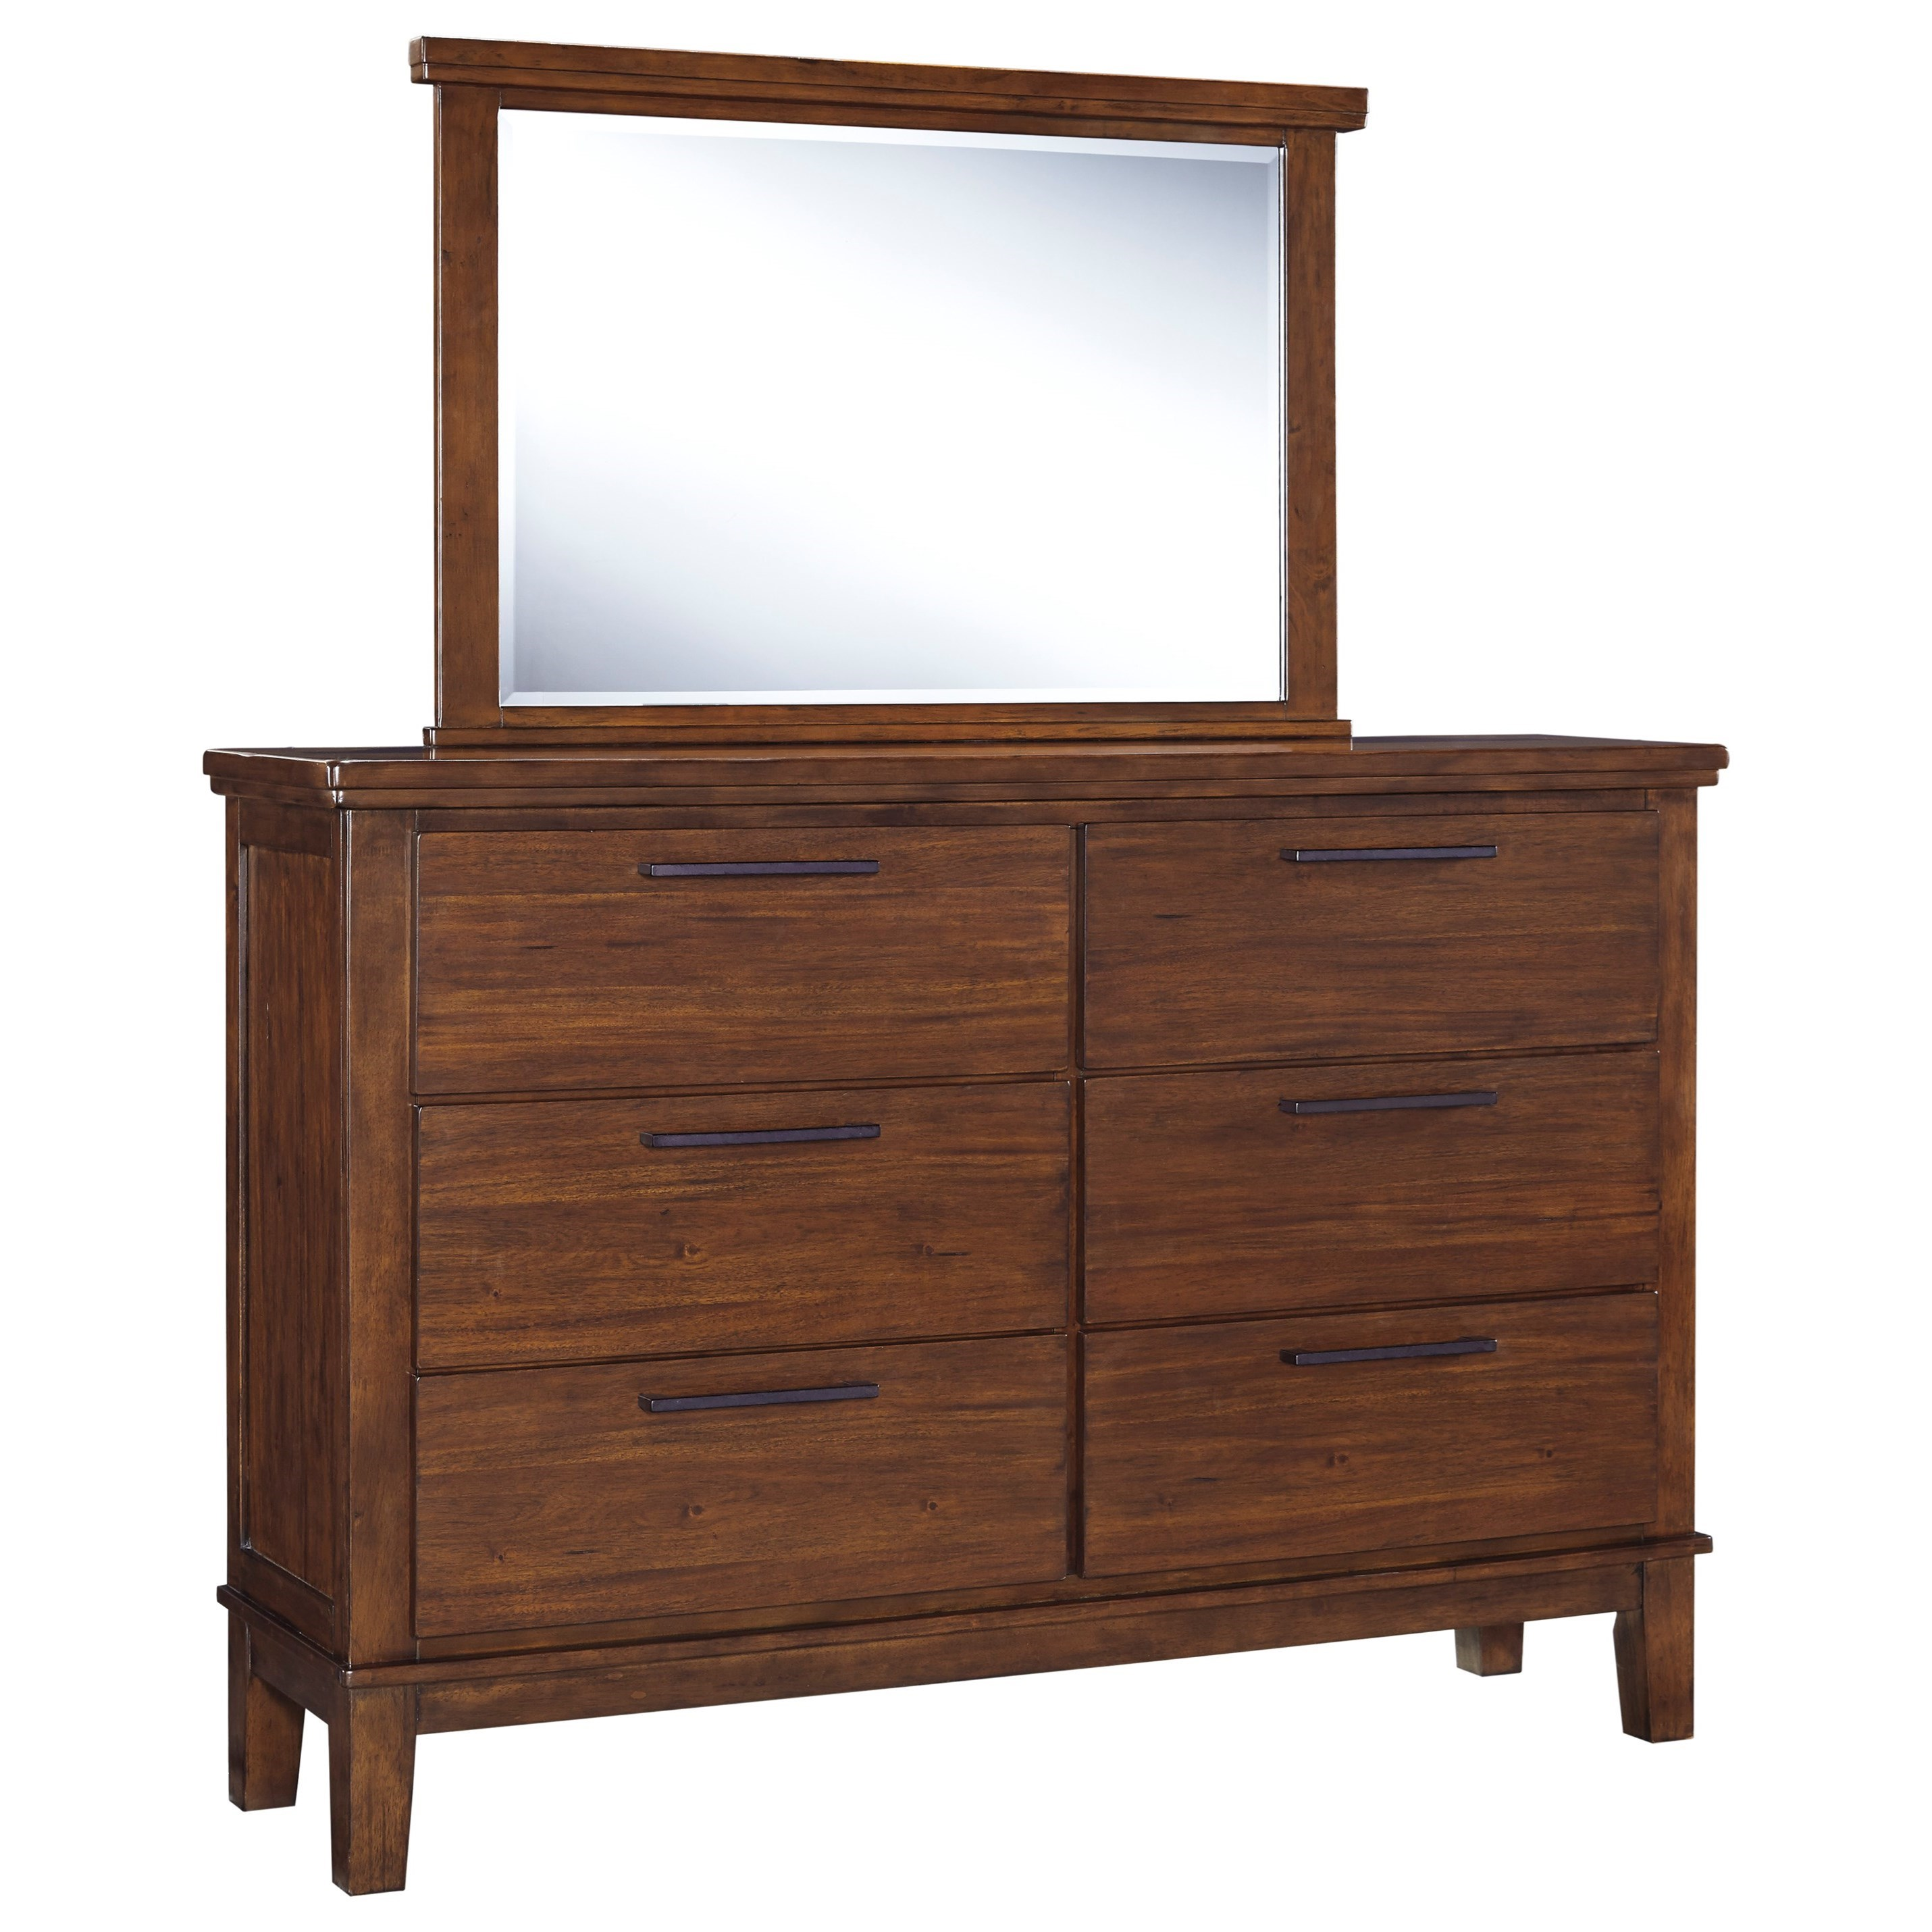 Ralene Dresser & Bedroom Mirror by Signature Design by Ashley at Northeast Factory Direct